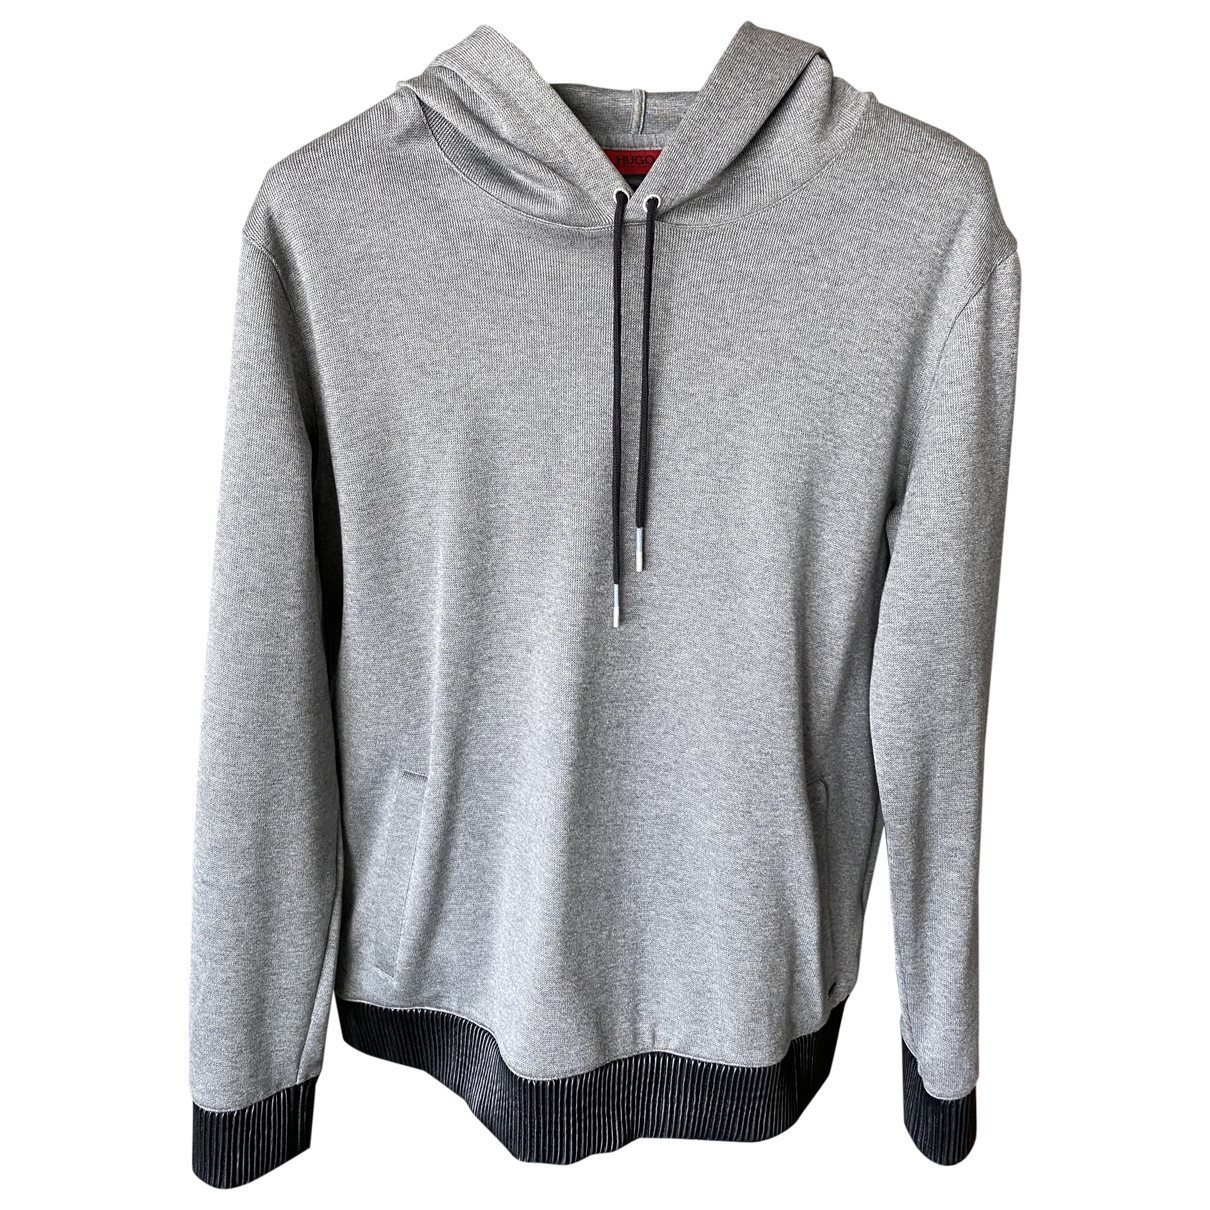 Hugo Boss \N Grey Cotton Knitwear & Sweatshirts for Men L International